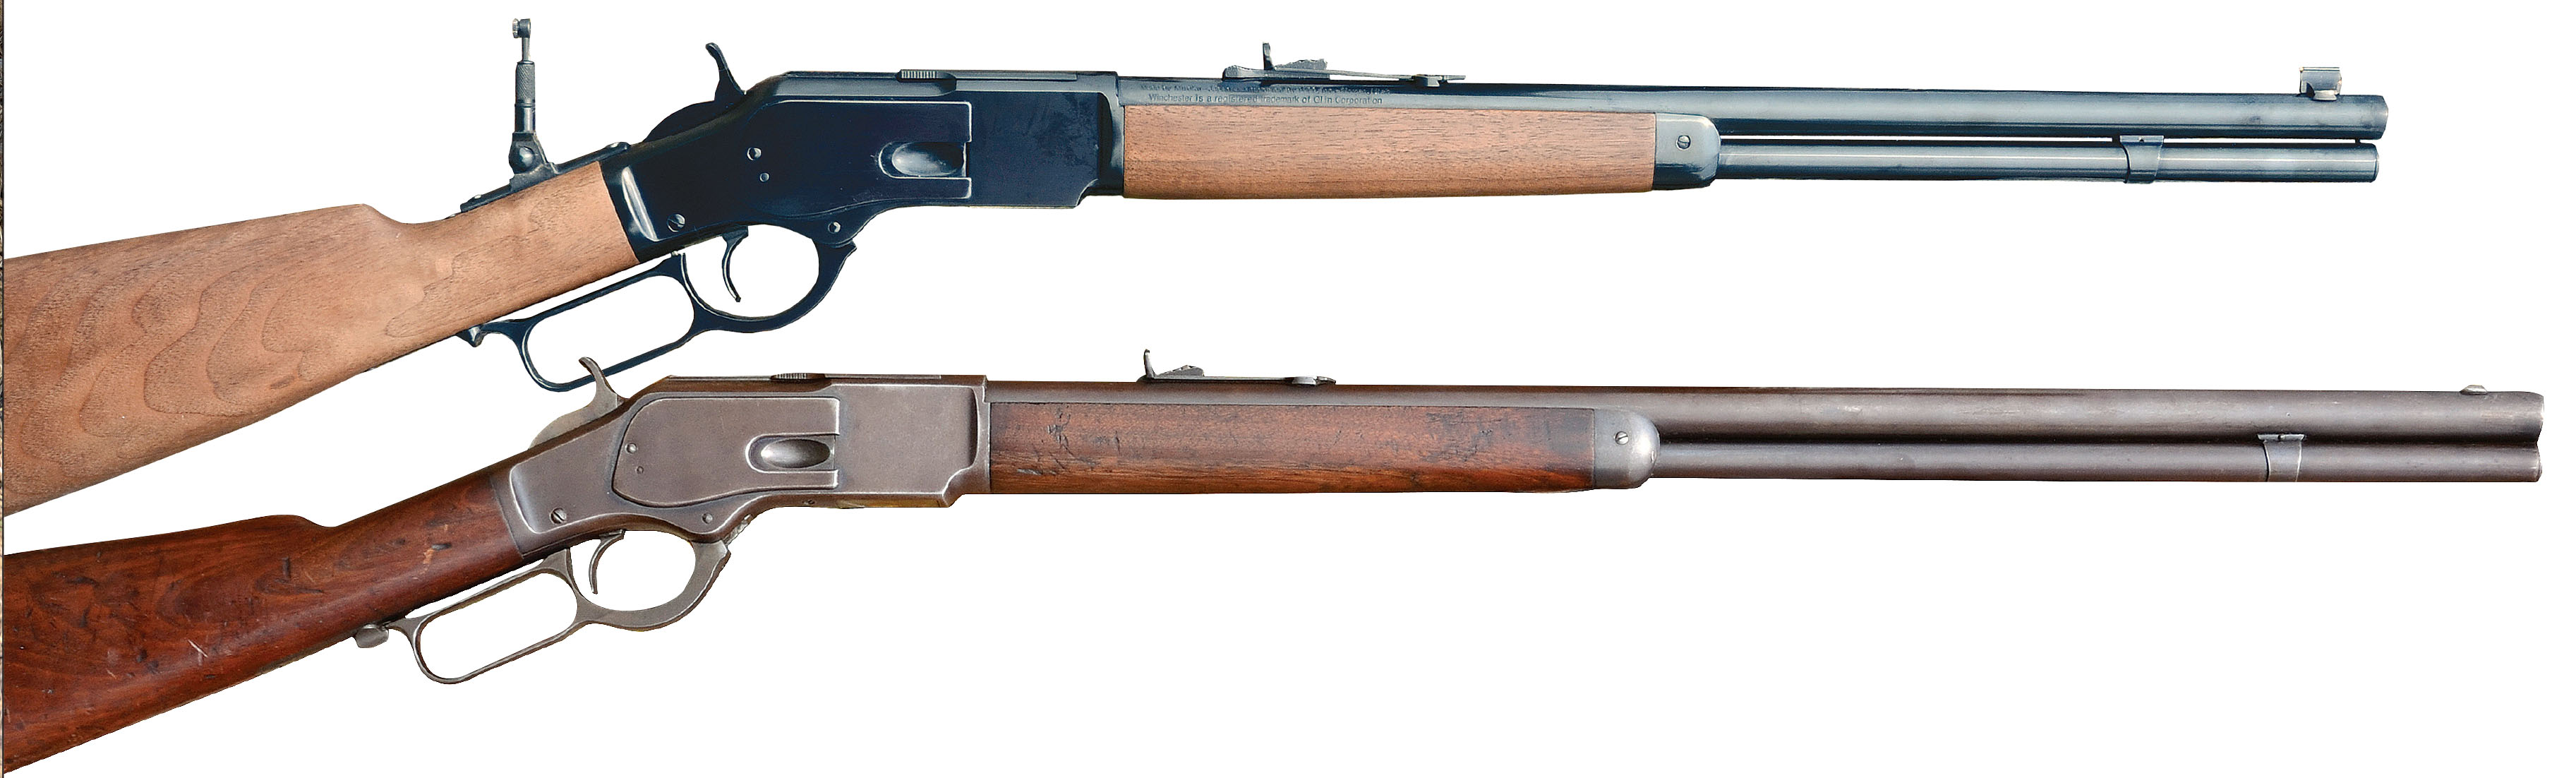 The new Winchester Model 1873 (above) is shown with an original Model 1873 standard rifle. Both are chambered for the .44-40.